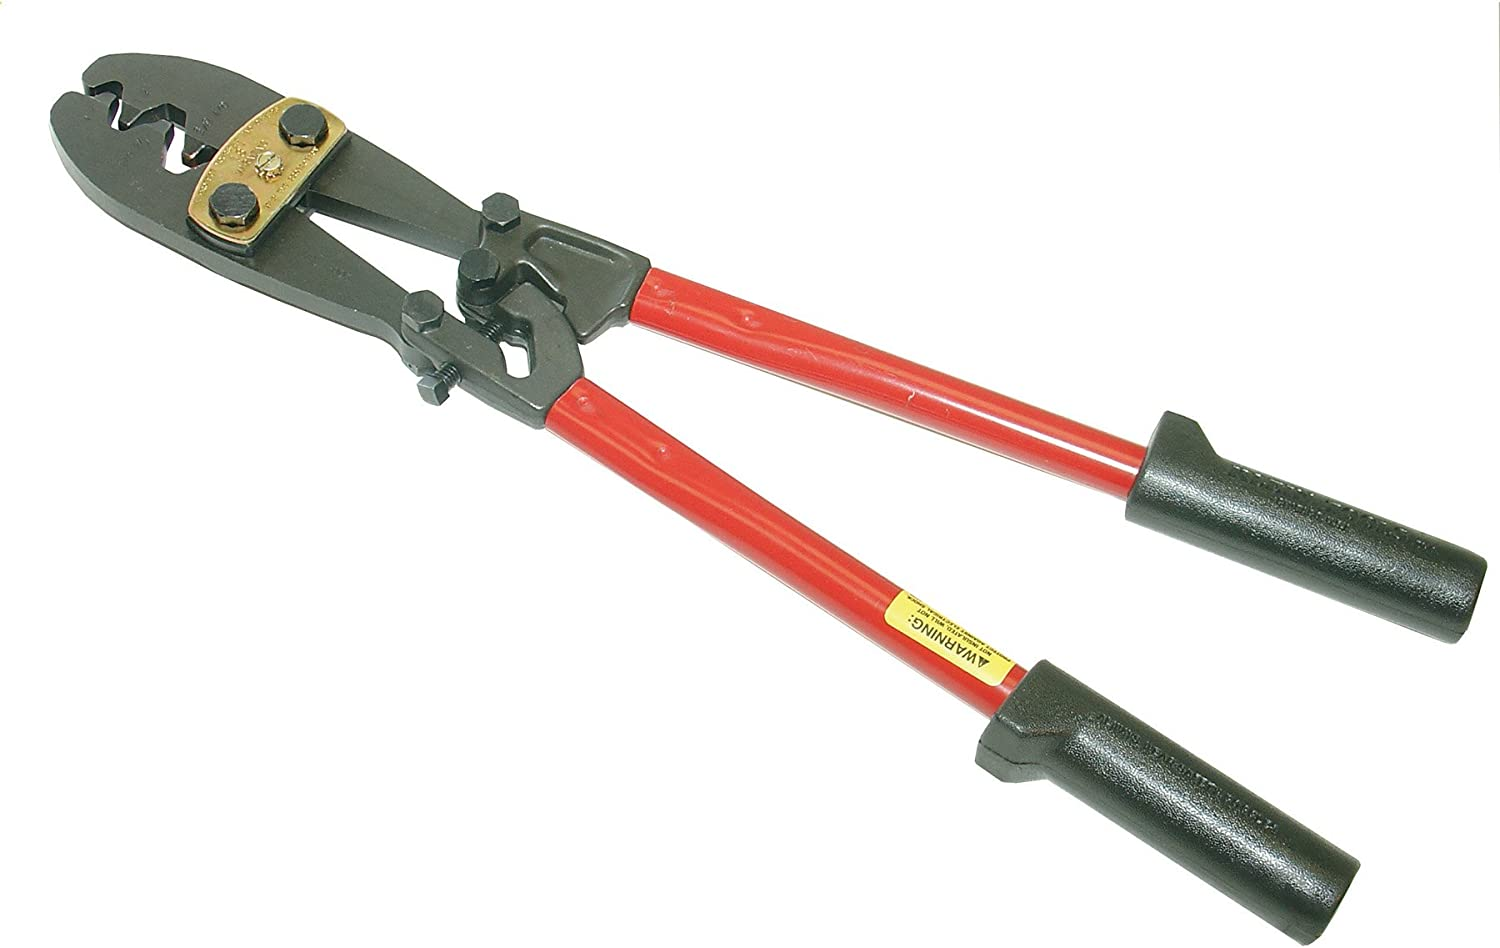 Klein Tools 2006 Large Compound-Action Crimp Tool,Red,19.5 Inches 71bkuxidTXLSL1500_